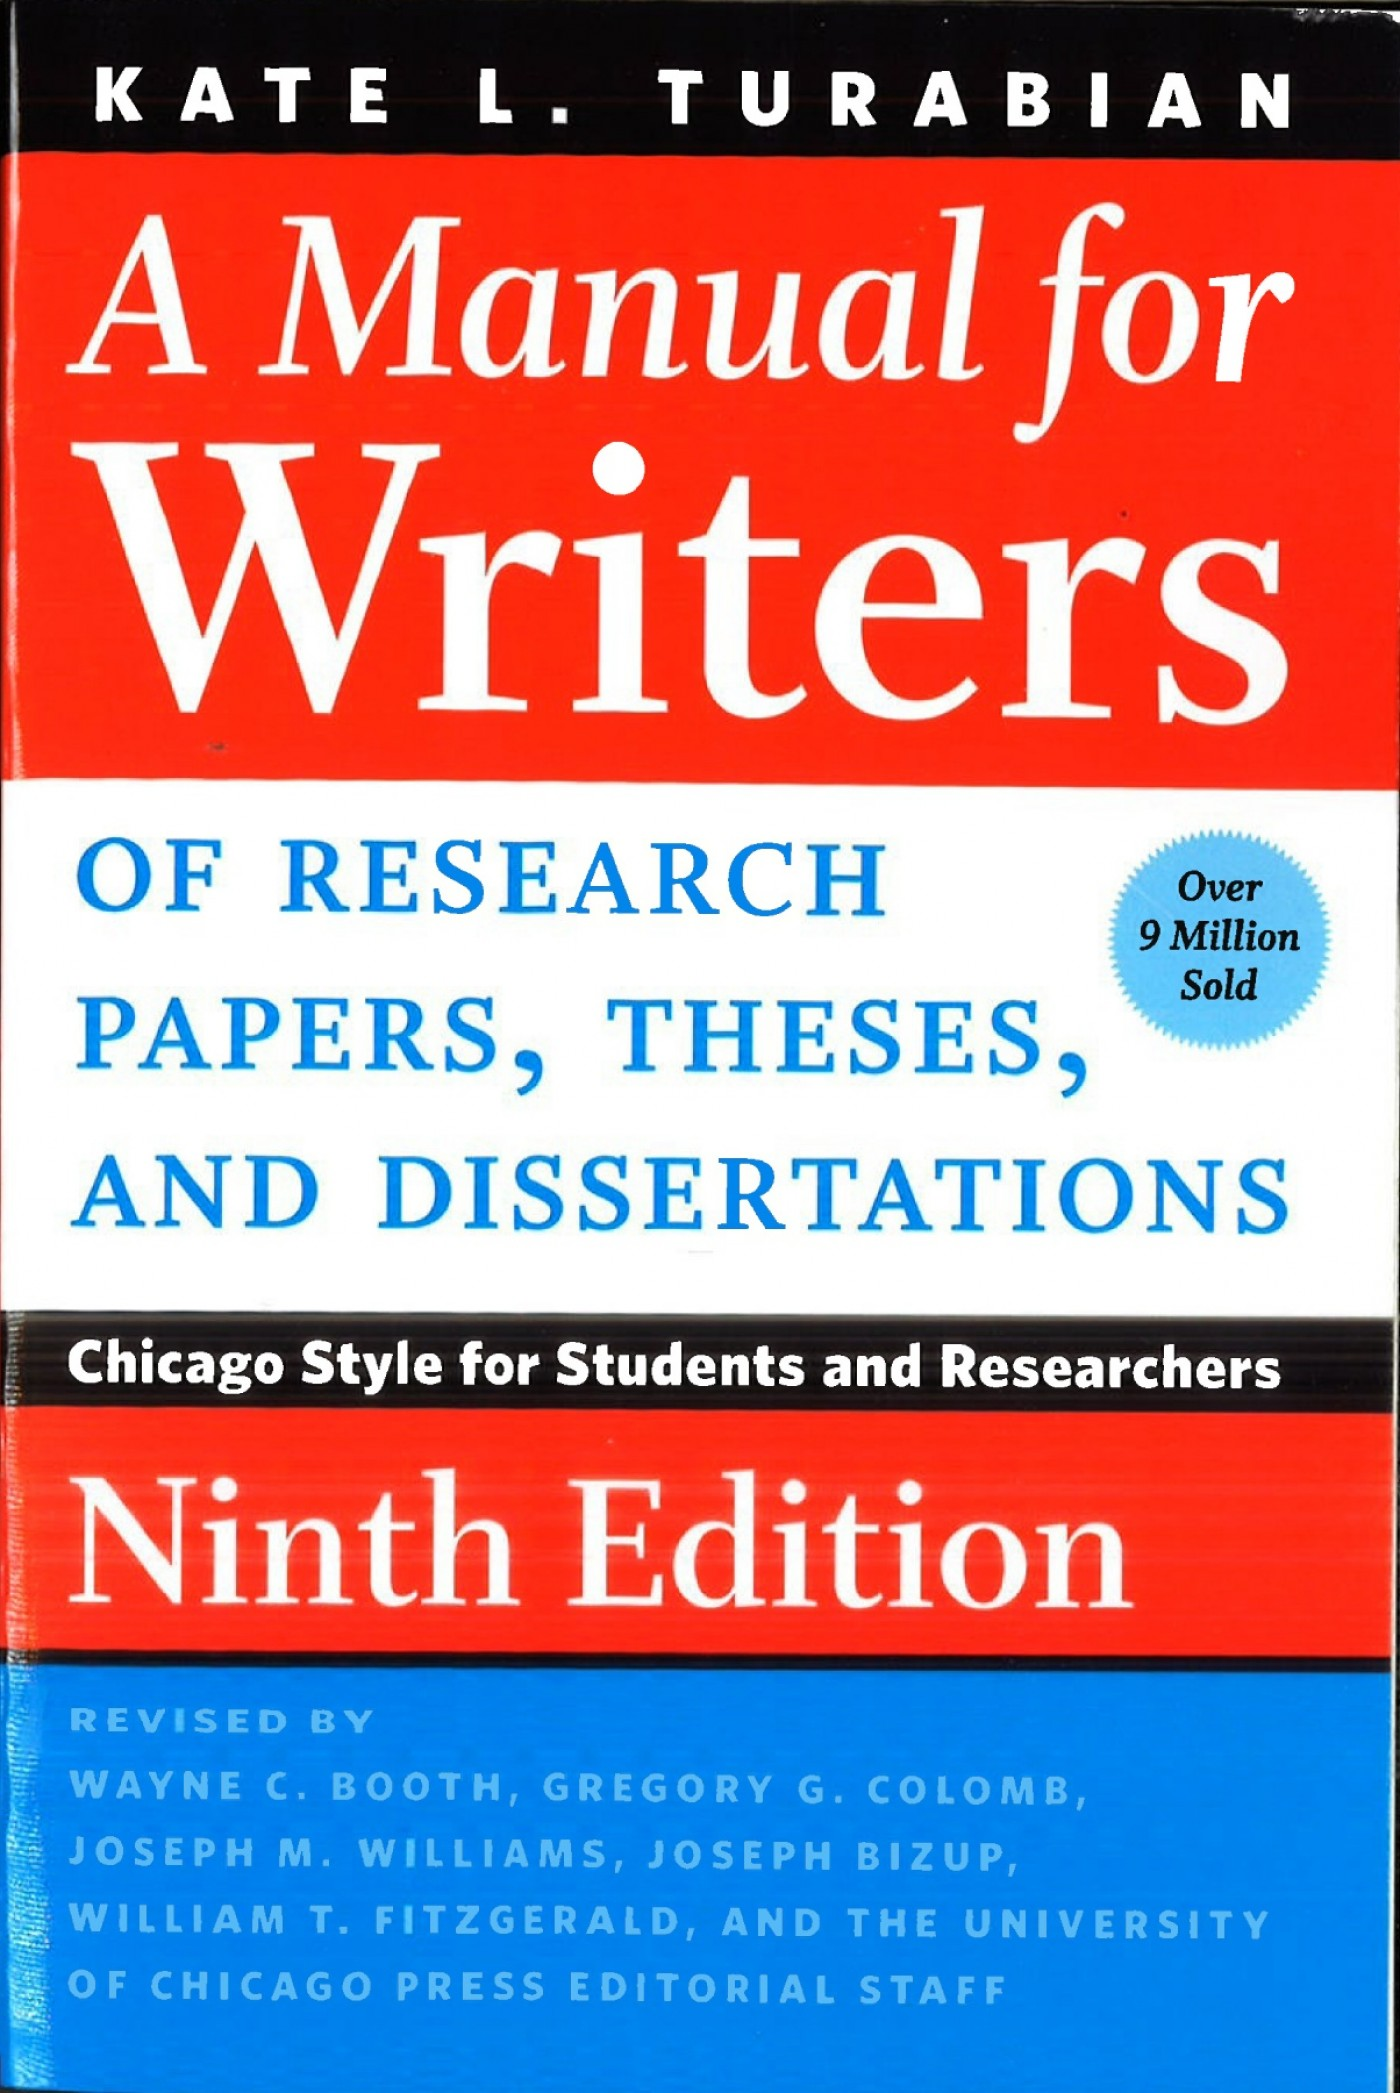 008 Research Paper Manual For Writers Of Papers Theses And Sensational A Dissertations 8th Edition Pdf Eighth 1400